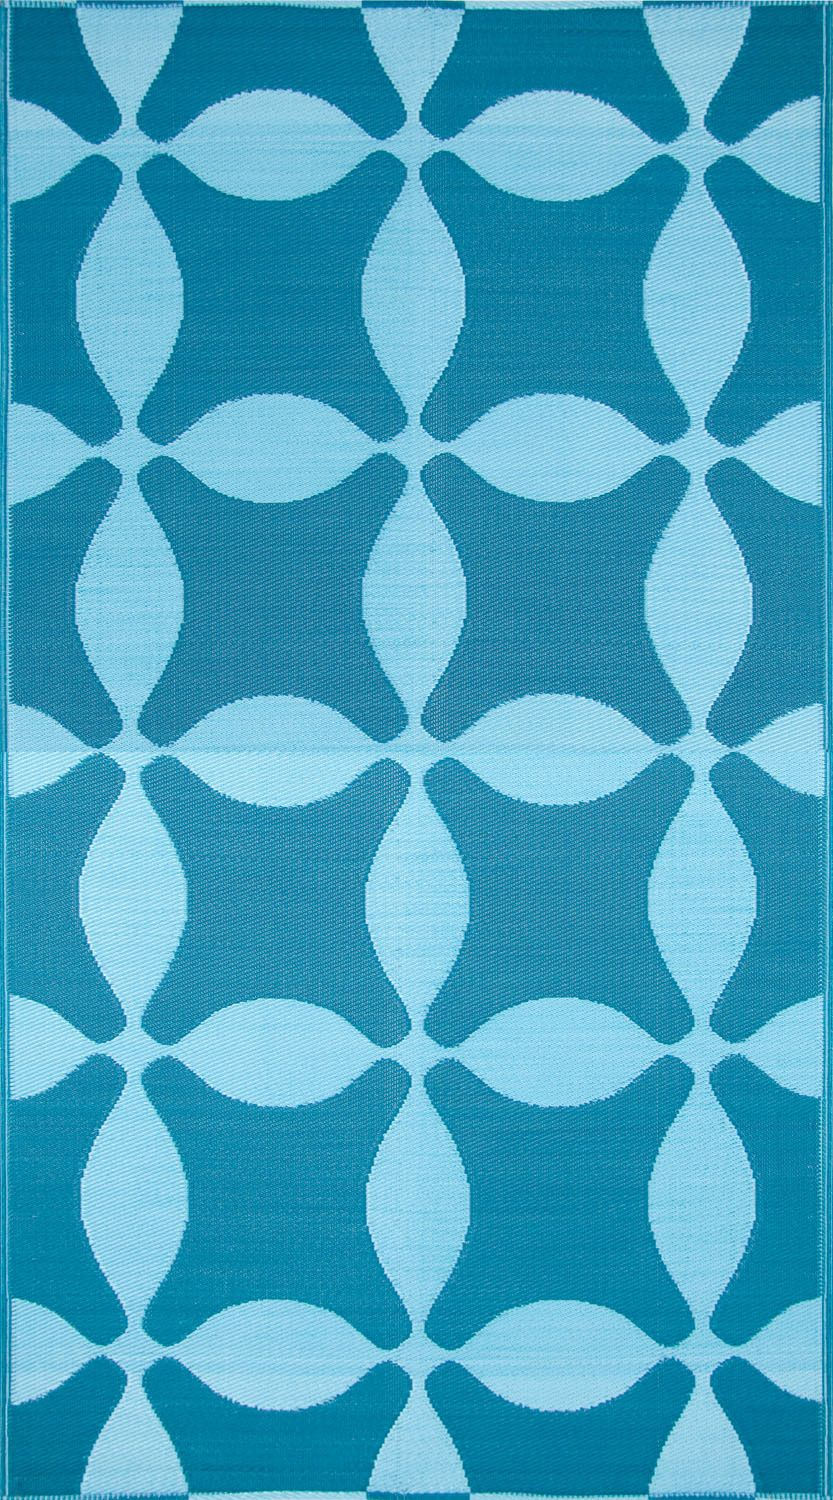 Koko Company Optic Teal Turquoise Outdoor Rug Rugs Outdoor Rugs Area Rugs